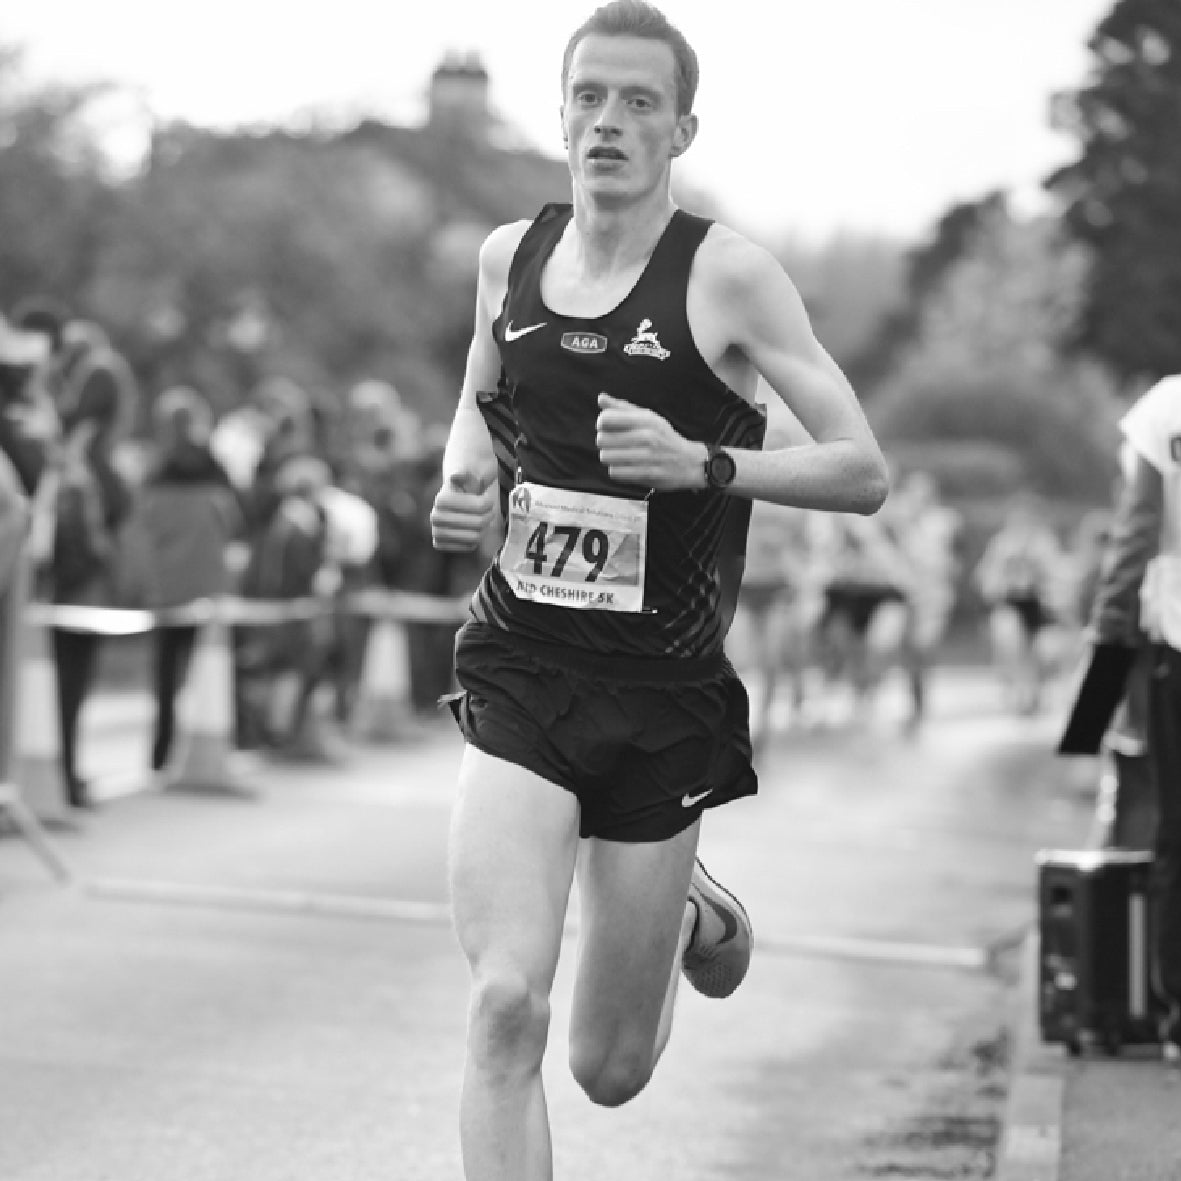 Alistair Rutherford - Birchfield Harriers Athlete & Professional Musician